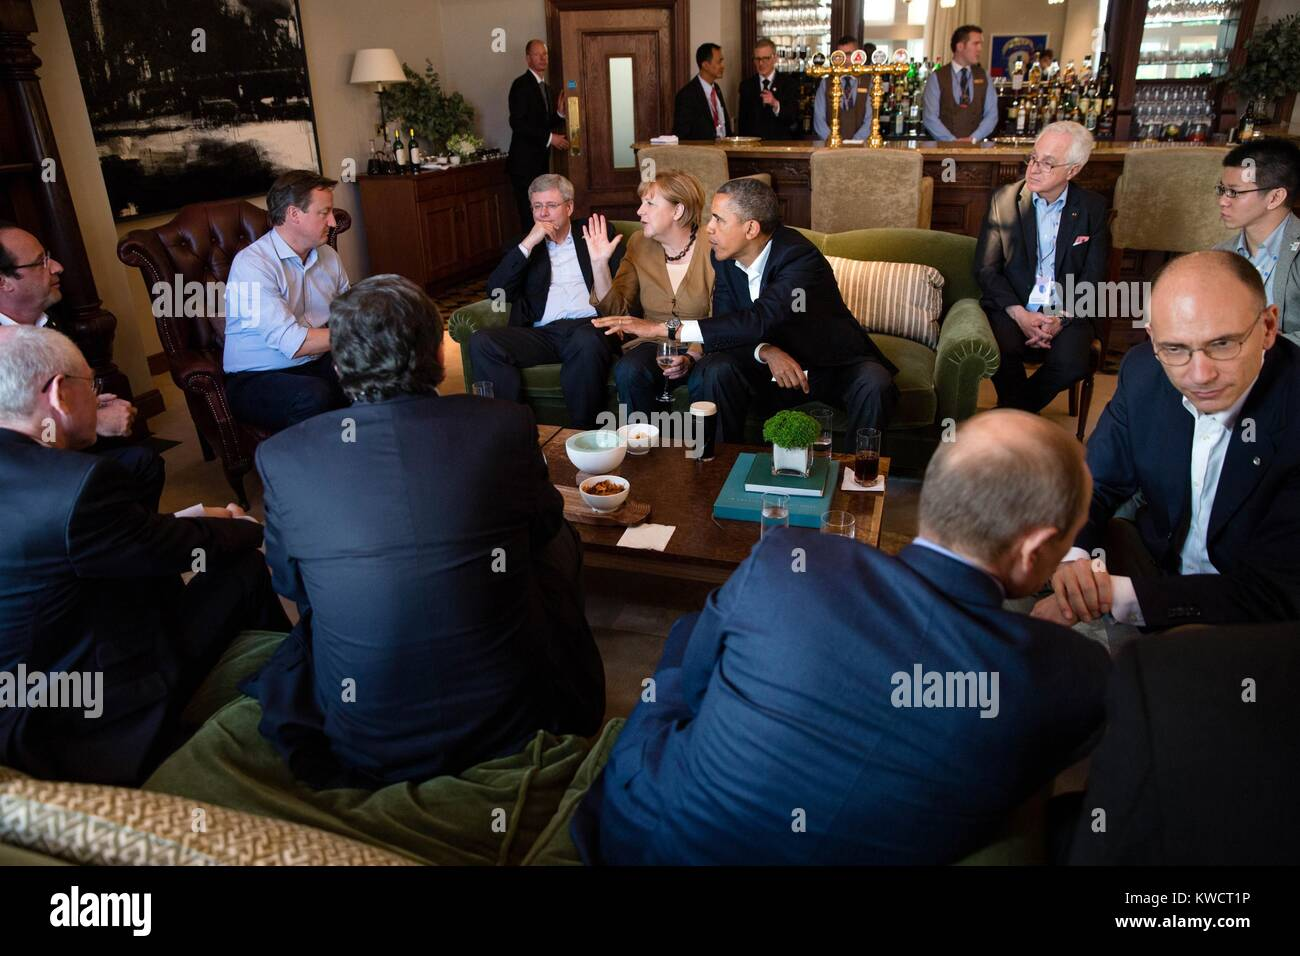 Leaders during the G8 Summit at Lough Erne Resort in Enniskillen, Northern Ireland. June 17, 2013. Counterclockwise Stock Photo